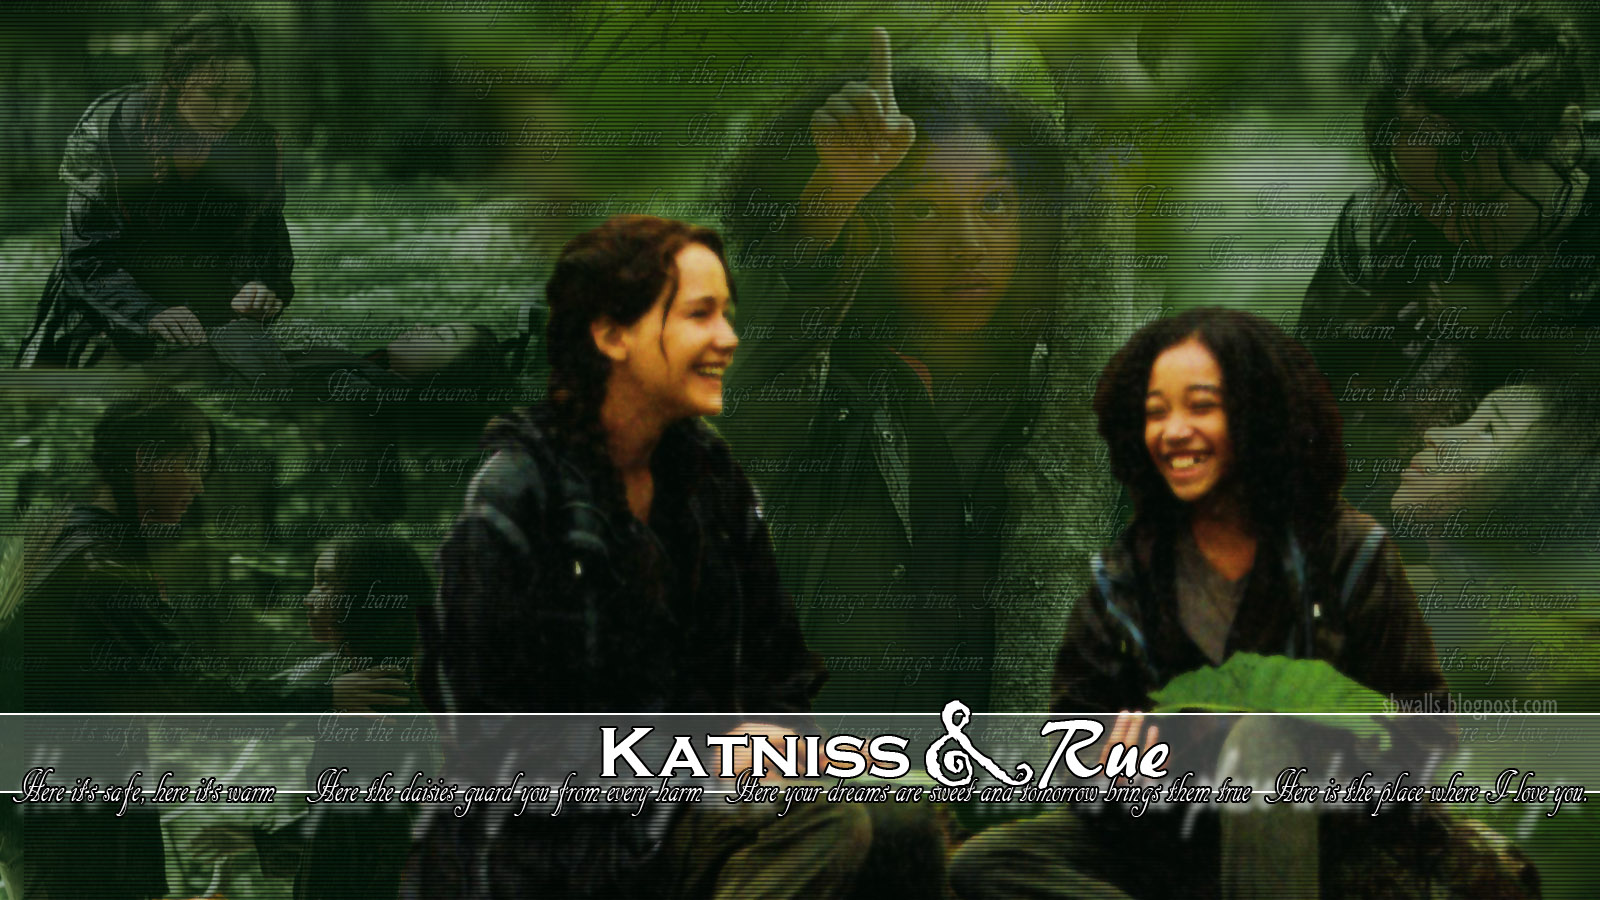 The hunger games katniss &; rue